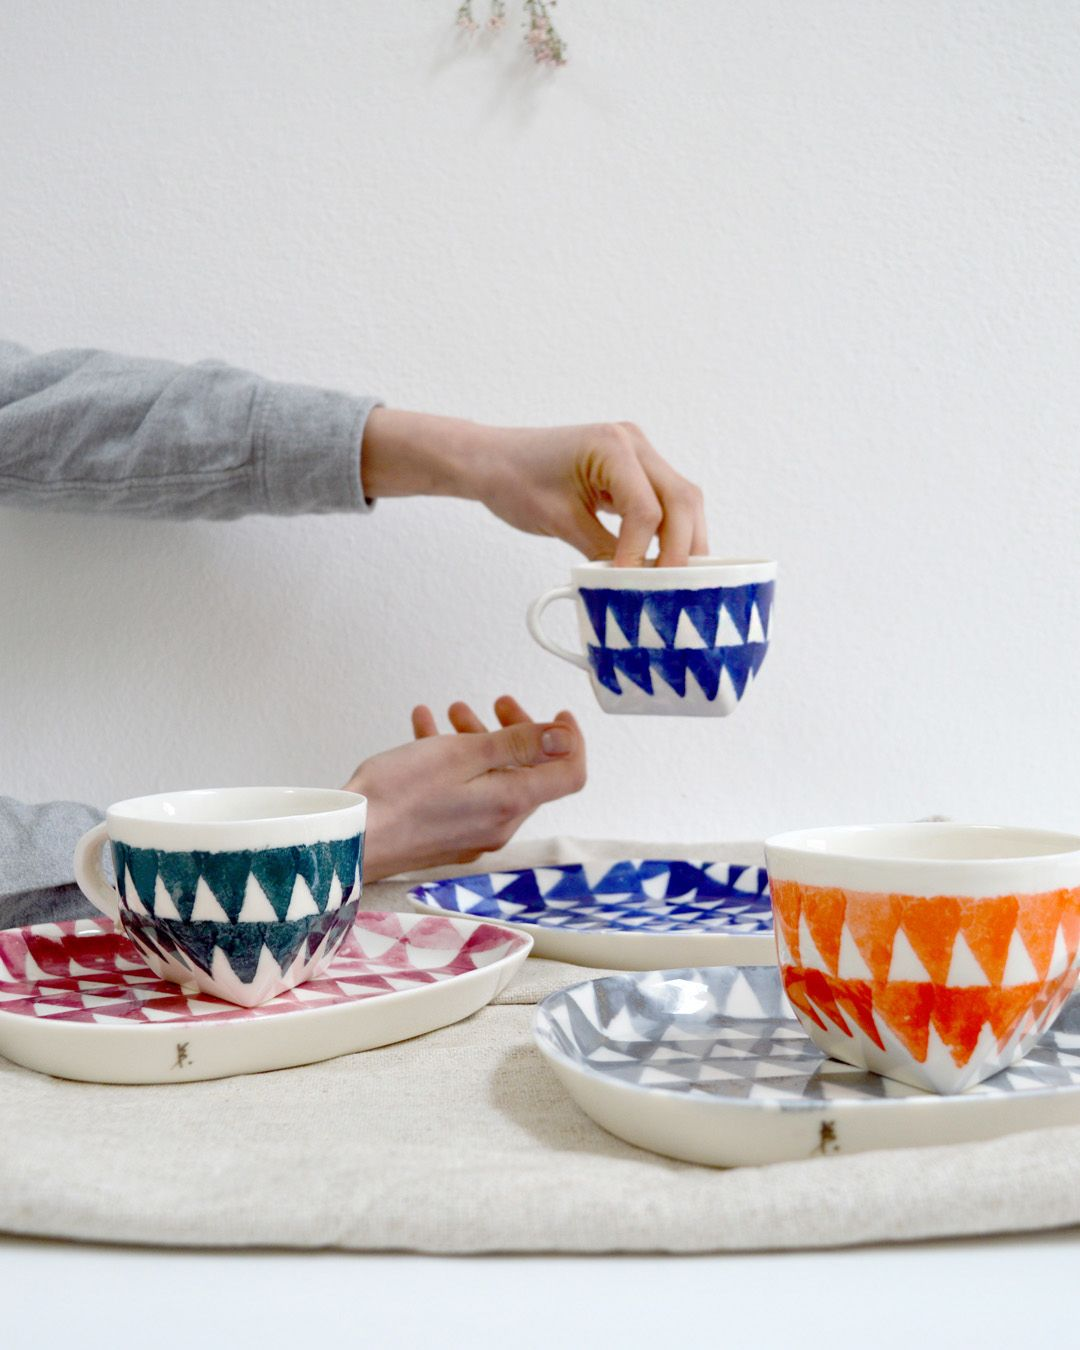 Mix and match colours of my handmade porcelain cups and plates.  .  My personal choice is blue, but green and pink comes quiet close too!  . . . #kbednorzceramics #porcelainplate #porcelaincup #ceramicdesign #contemporaryceramics #functionalceramics #claystagram #moderncraft #studioloommodena